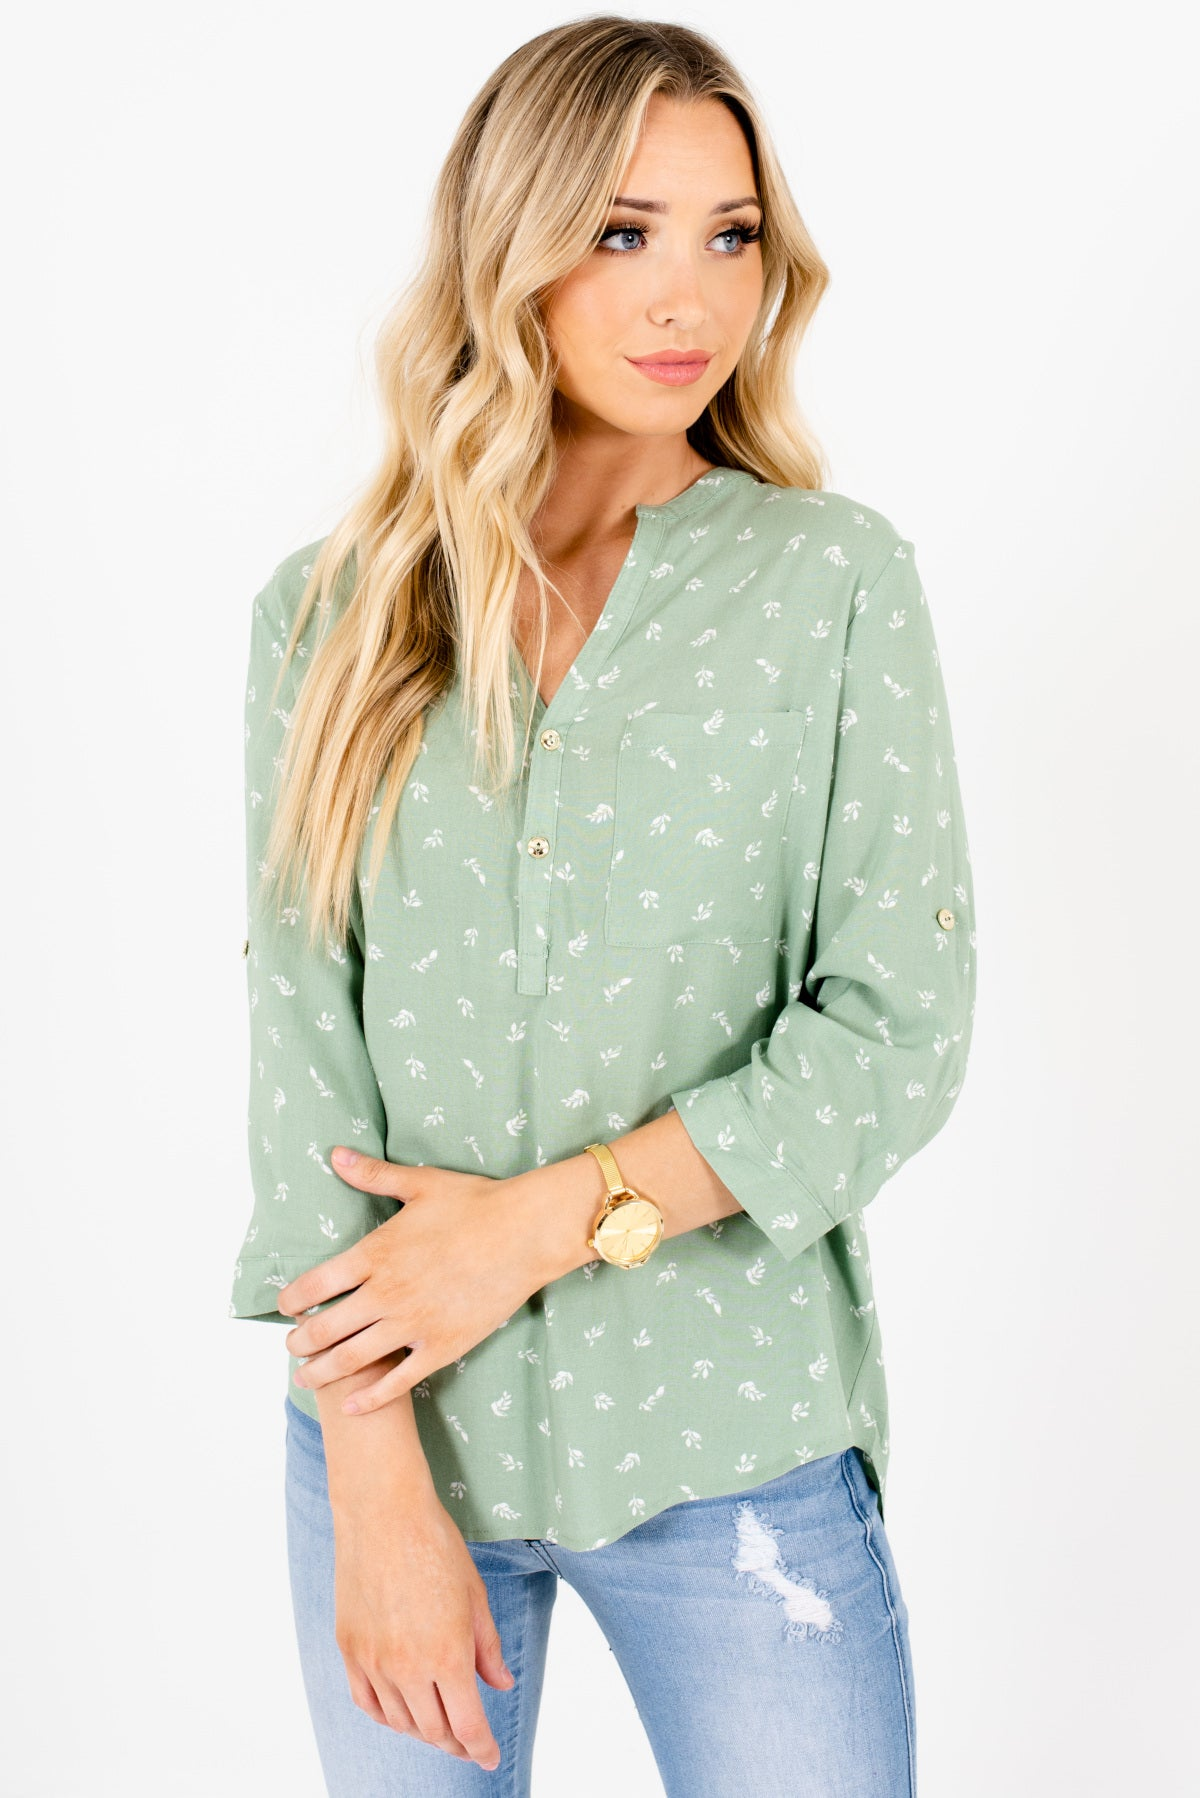 Sage Green and White Leaf Patterned Boutique Blouses for Women